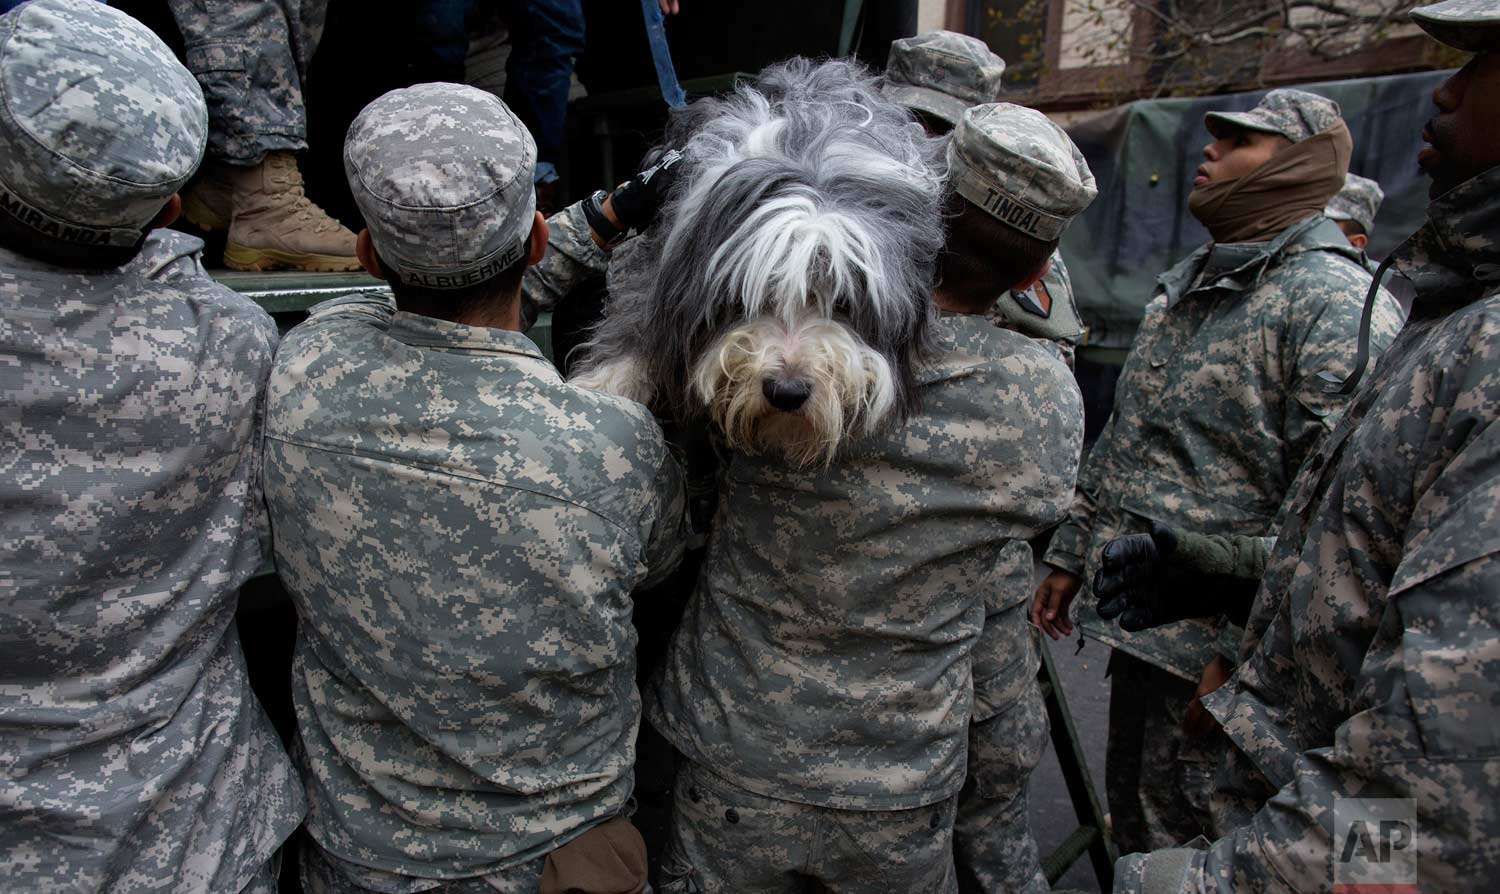 A dog named Shaggy is handed from a National Guard truck to National Guard personnel after the dog and his owner left a flooded building in Hoboken, N.J., Wednesday, Oct. 31, 2012, in the wake of superstorm Sandy. Some residents and pets are being plucked from their homes by large trucks as parts of the city are still covered in standing water. (AP Photo/Craig Ruttle)